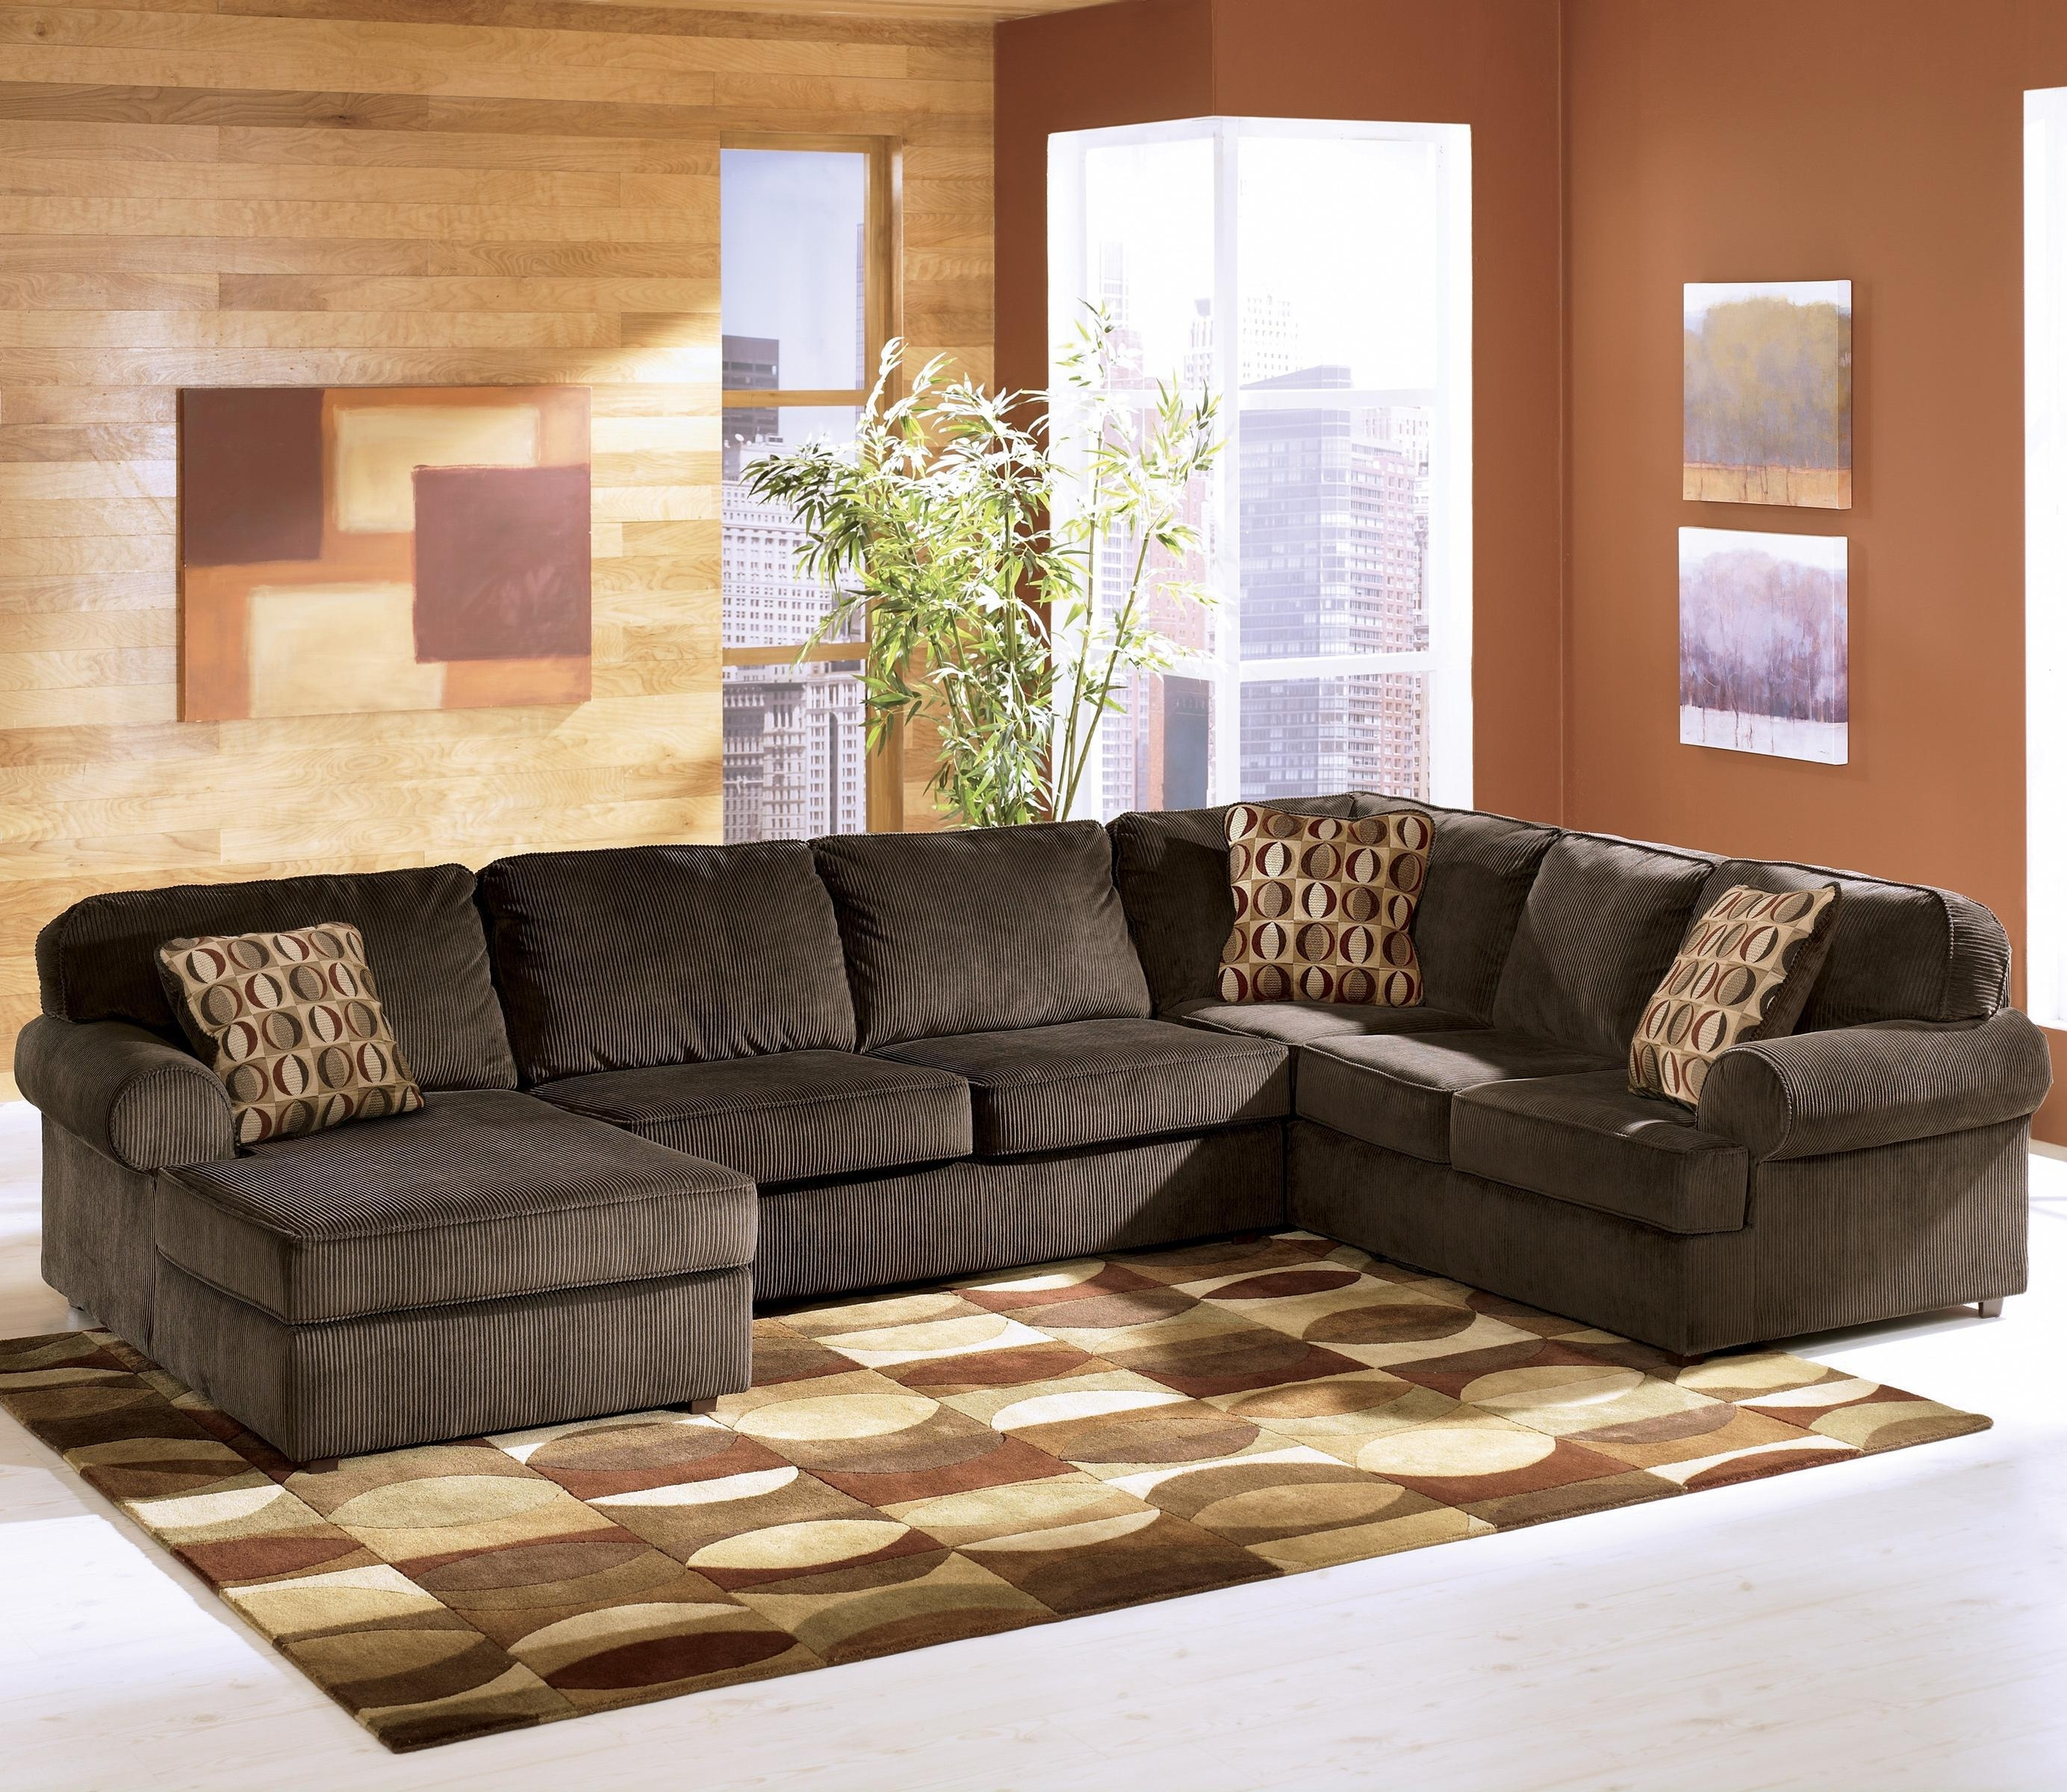 Ashley Furniture Vista - Chocolate Casual 3-Piece Sectional With in Blaine 3 Piece Sectionals (Image 6 of 30)